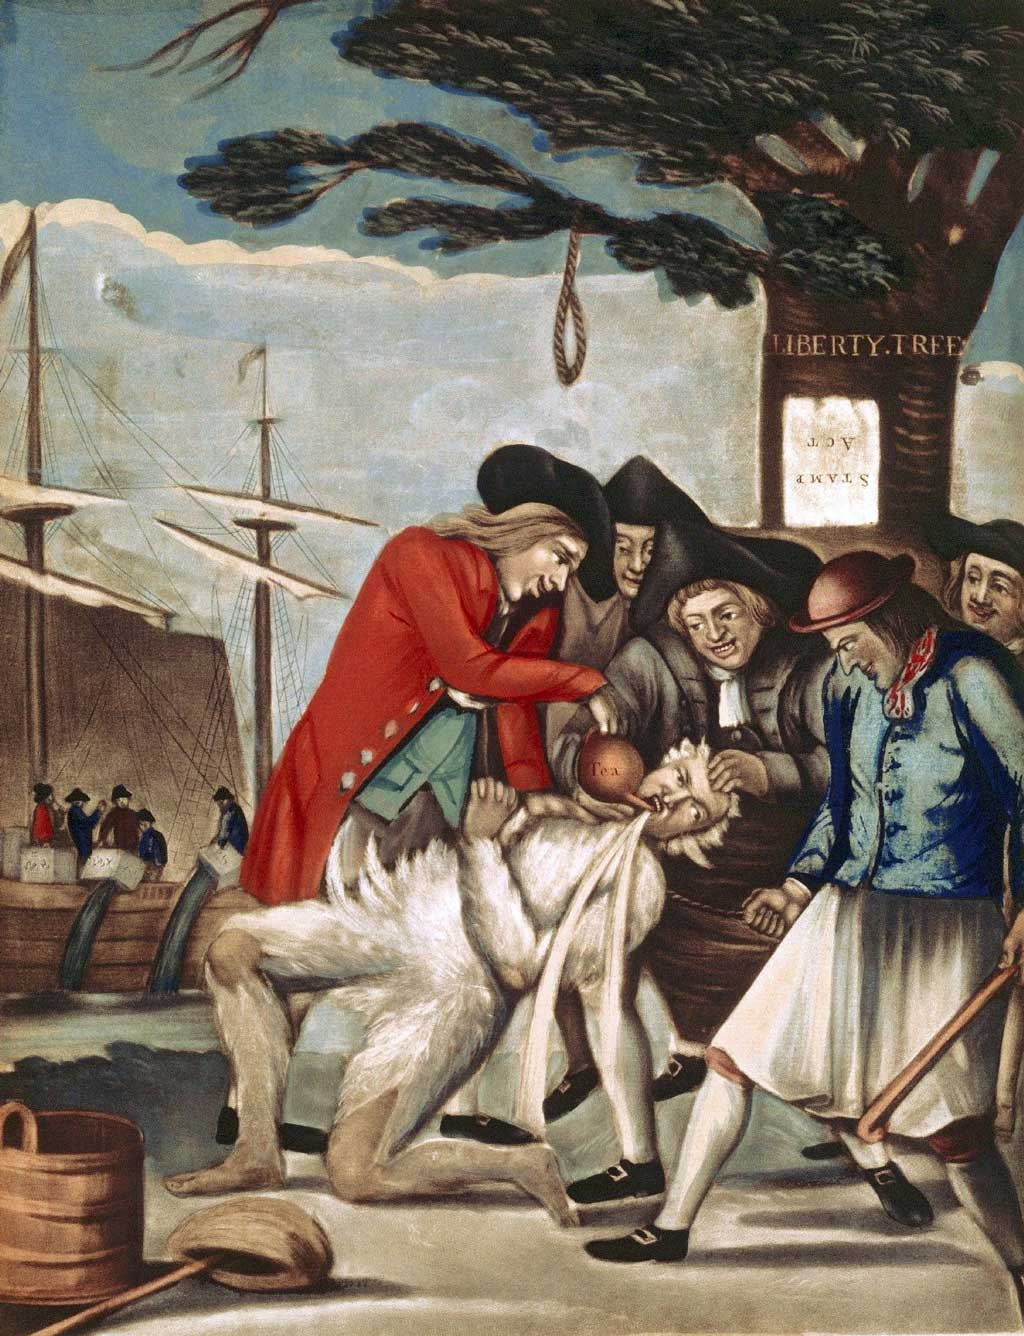 A depiction of the tarring and feathering of Commissioner of Customs John Malcolm, a Loyalist, by five Patriots on 5 January 1744 under the Liberty Tree in Boston, Massachusetts. Tea is also being poured into Malcolm's mouth.